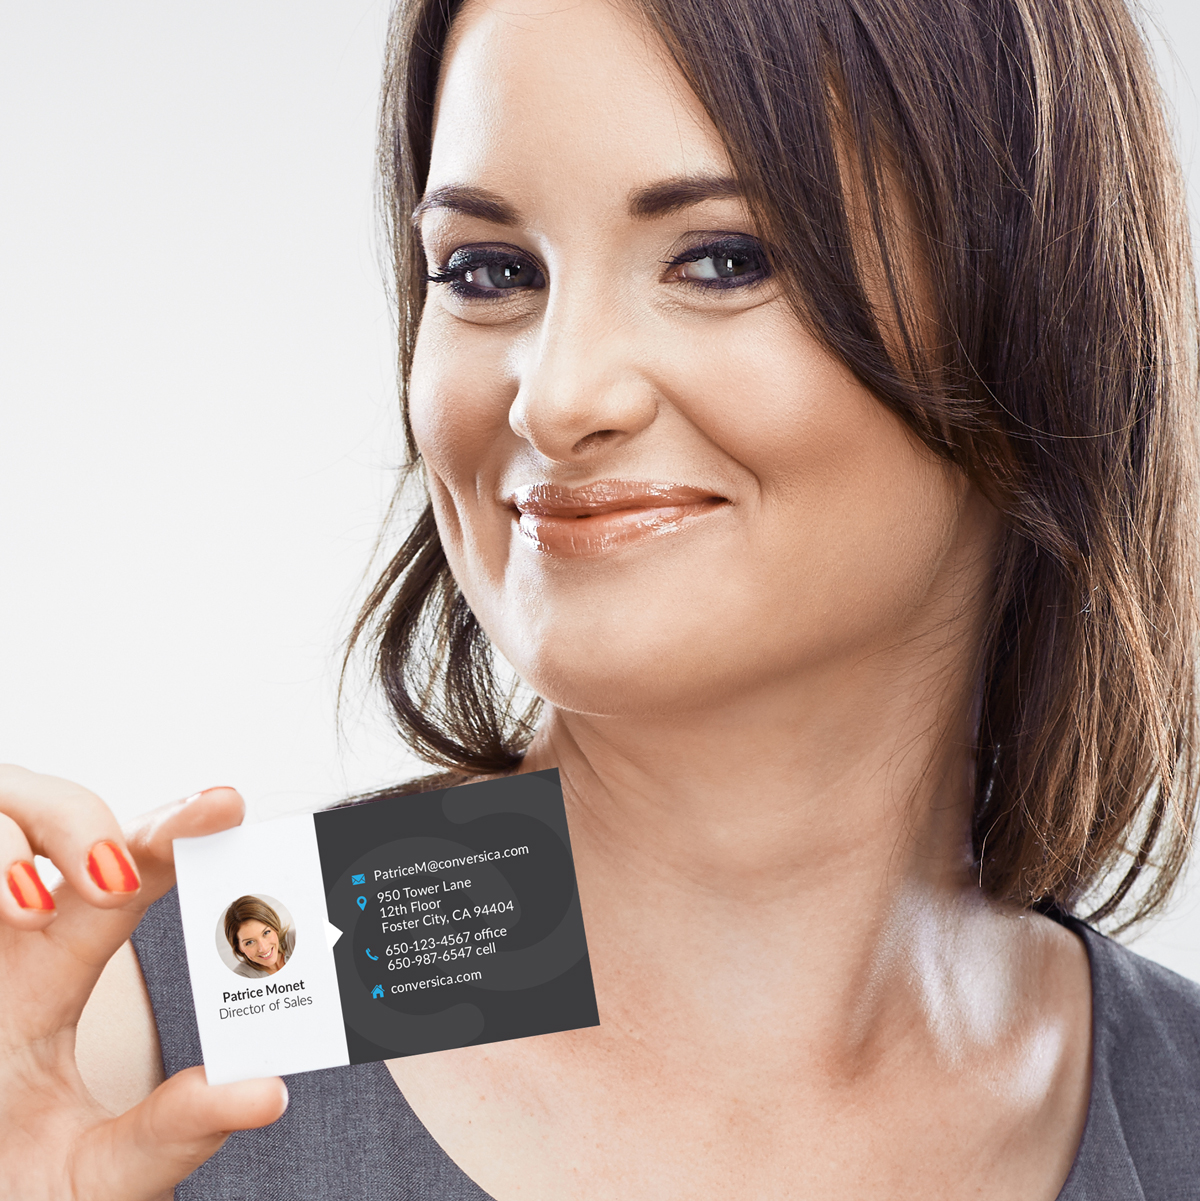 Conversica's ai sales assistant creates an engaging conversation with leads. So the business cards highlight the personal aspect of their solution by showing the person.